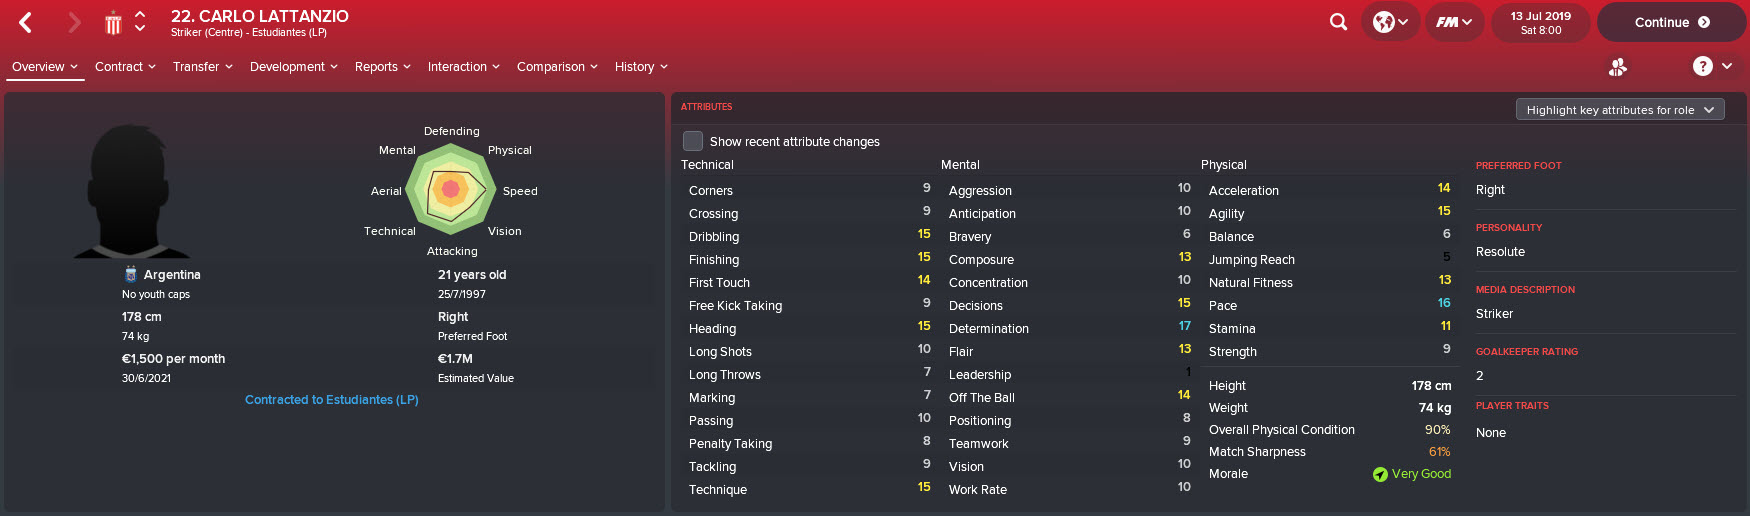 I loaned Carlo to Argentinos Juniors for 2018/19, but placed a Recall option on the loan.